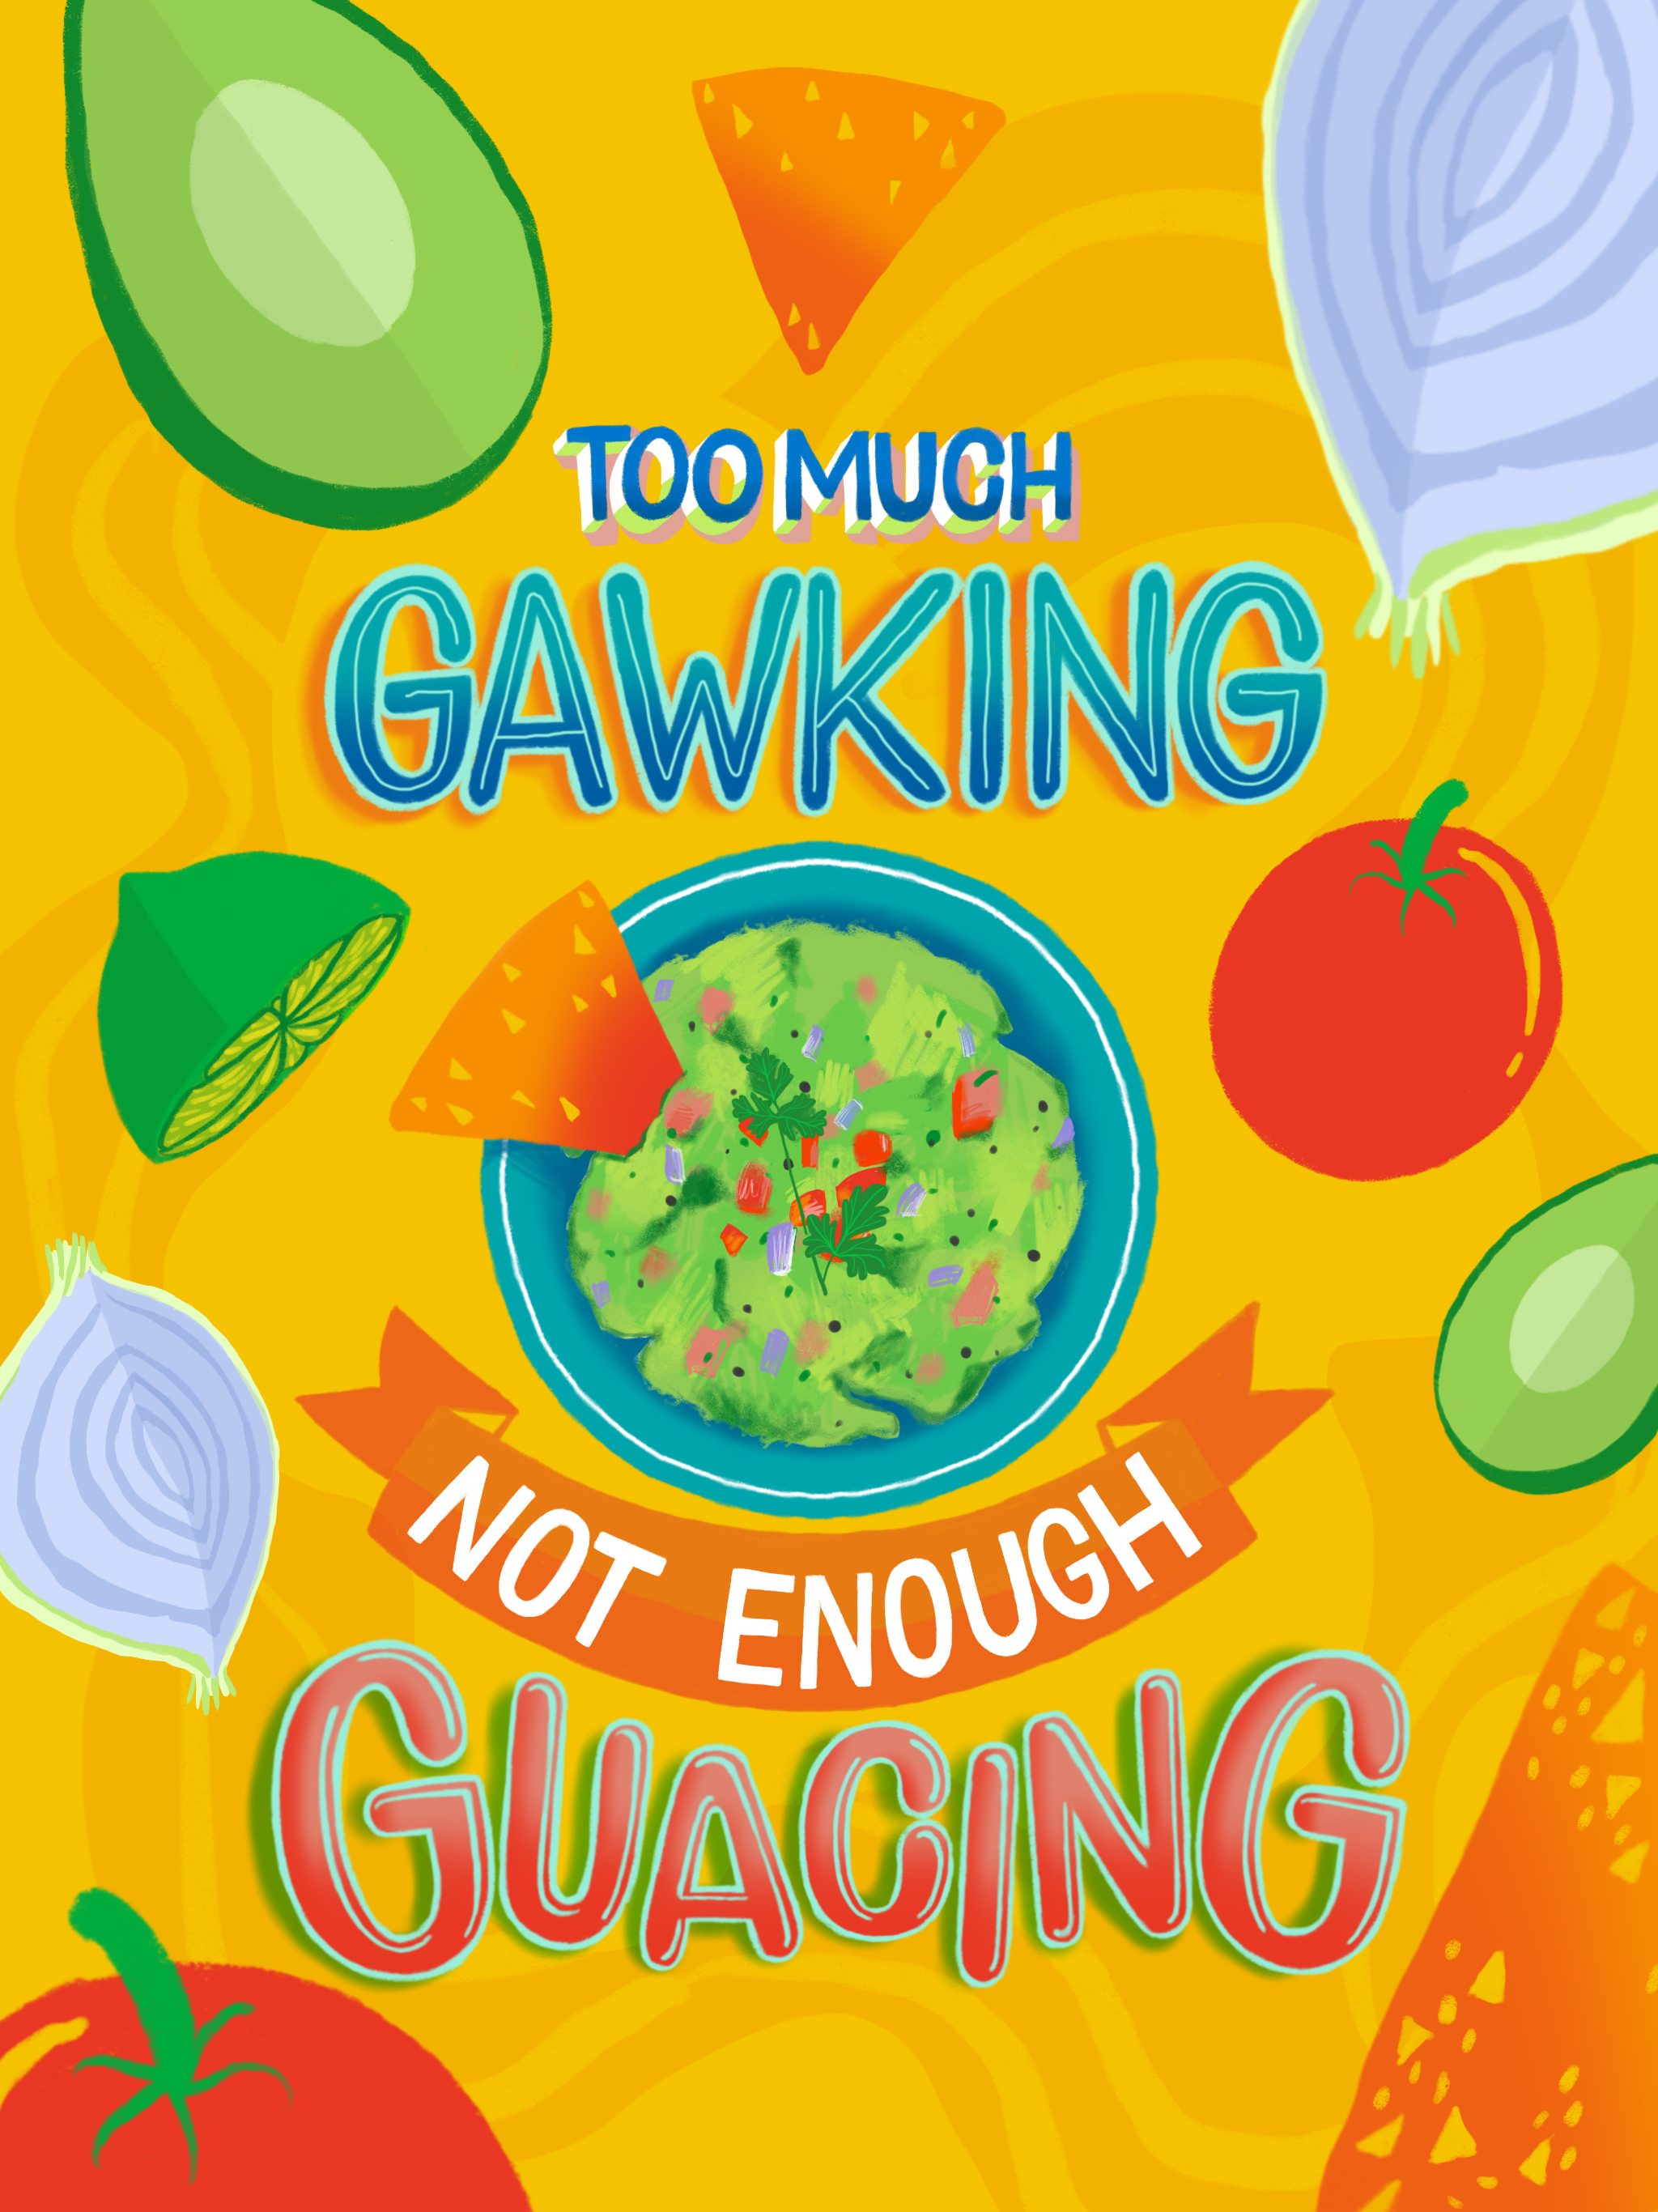 Too Much Gawking, Not Enough Guacing